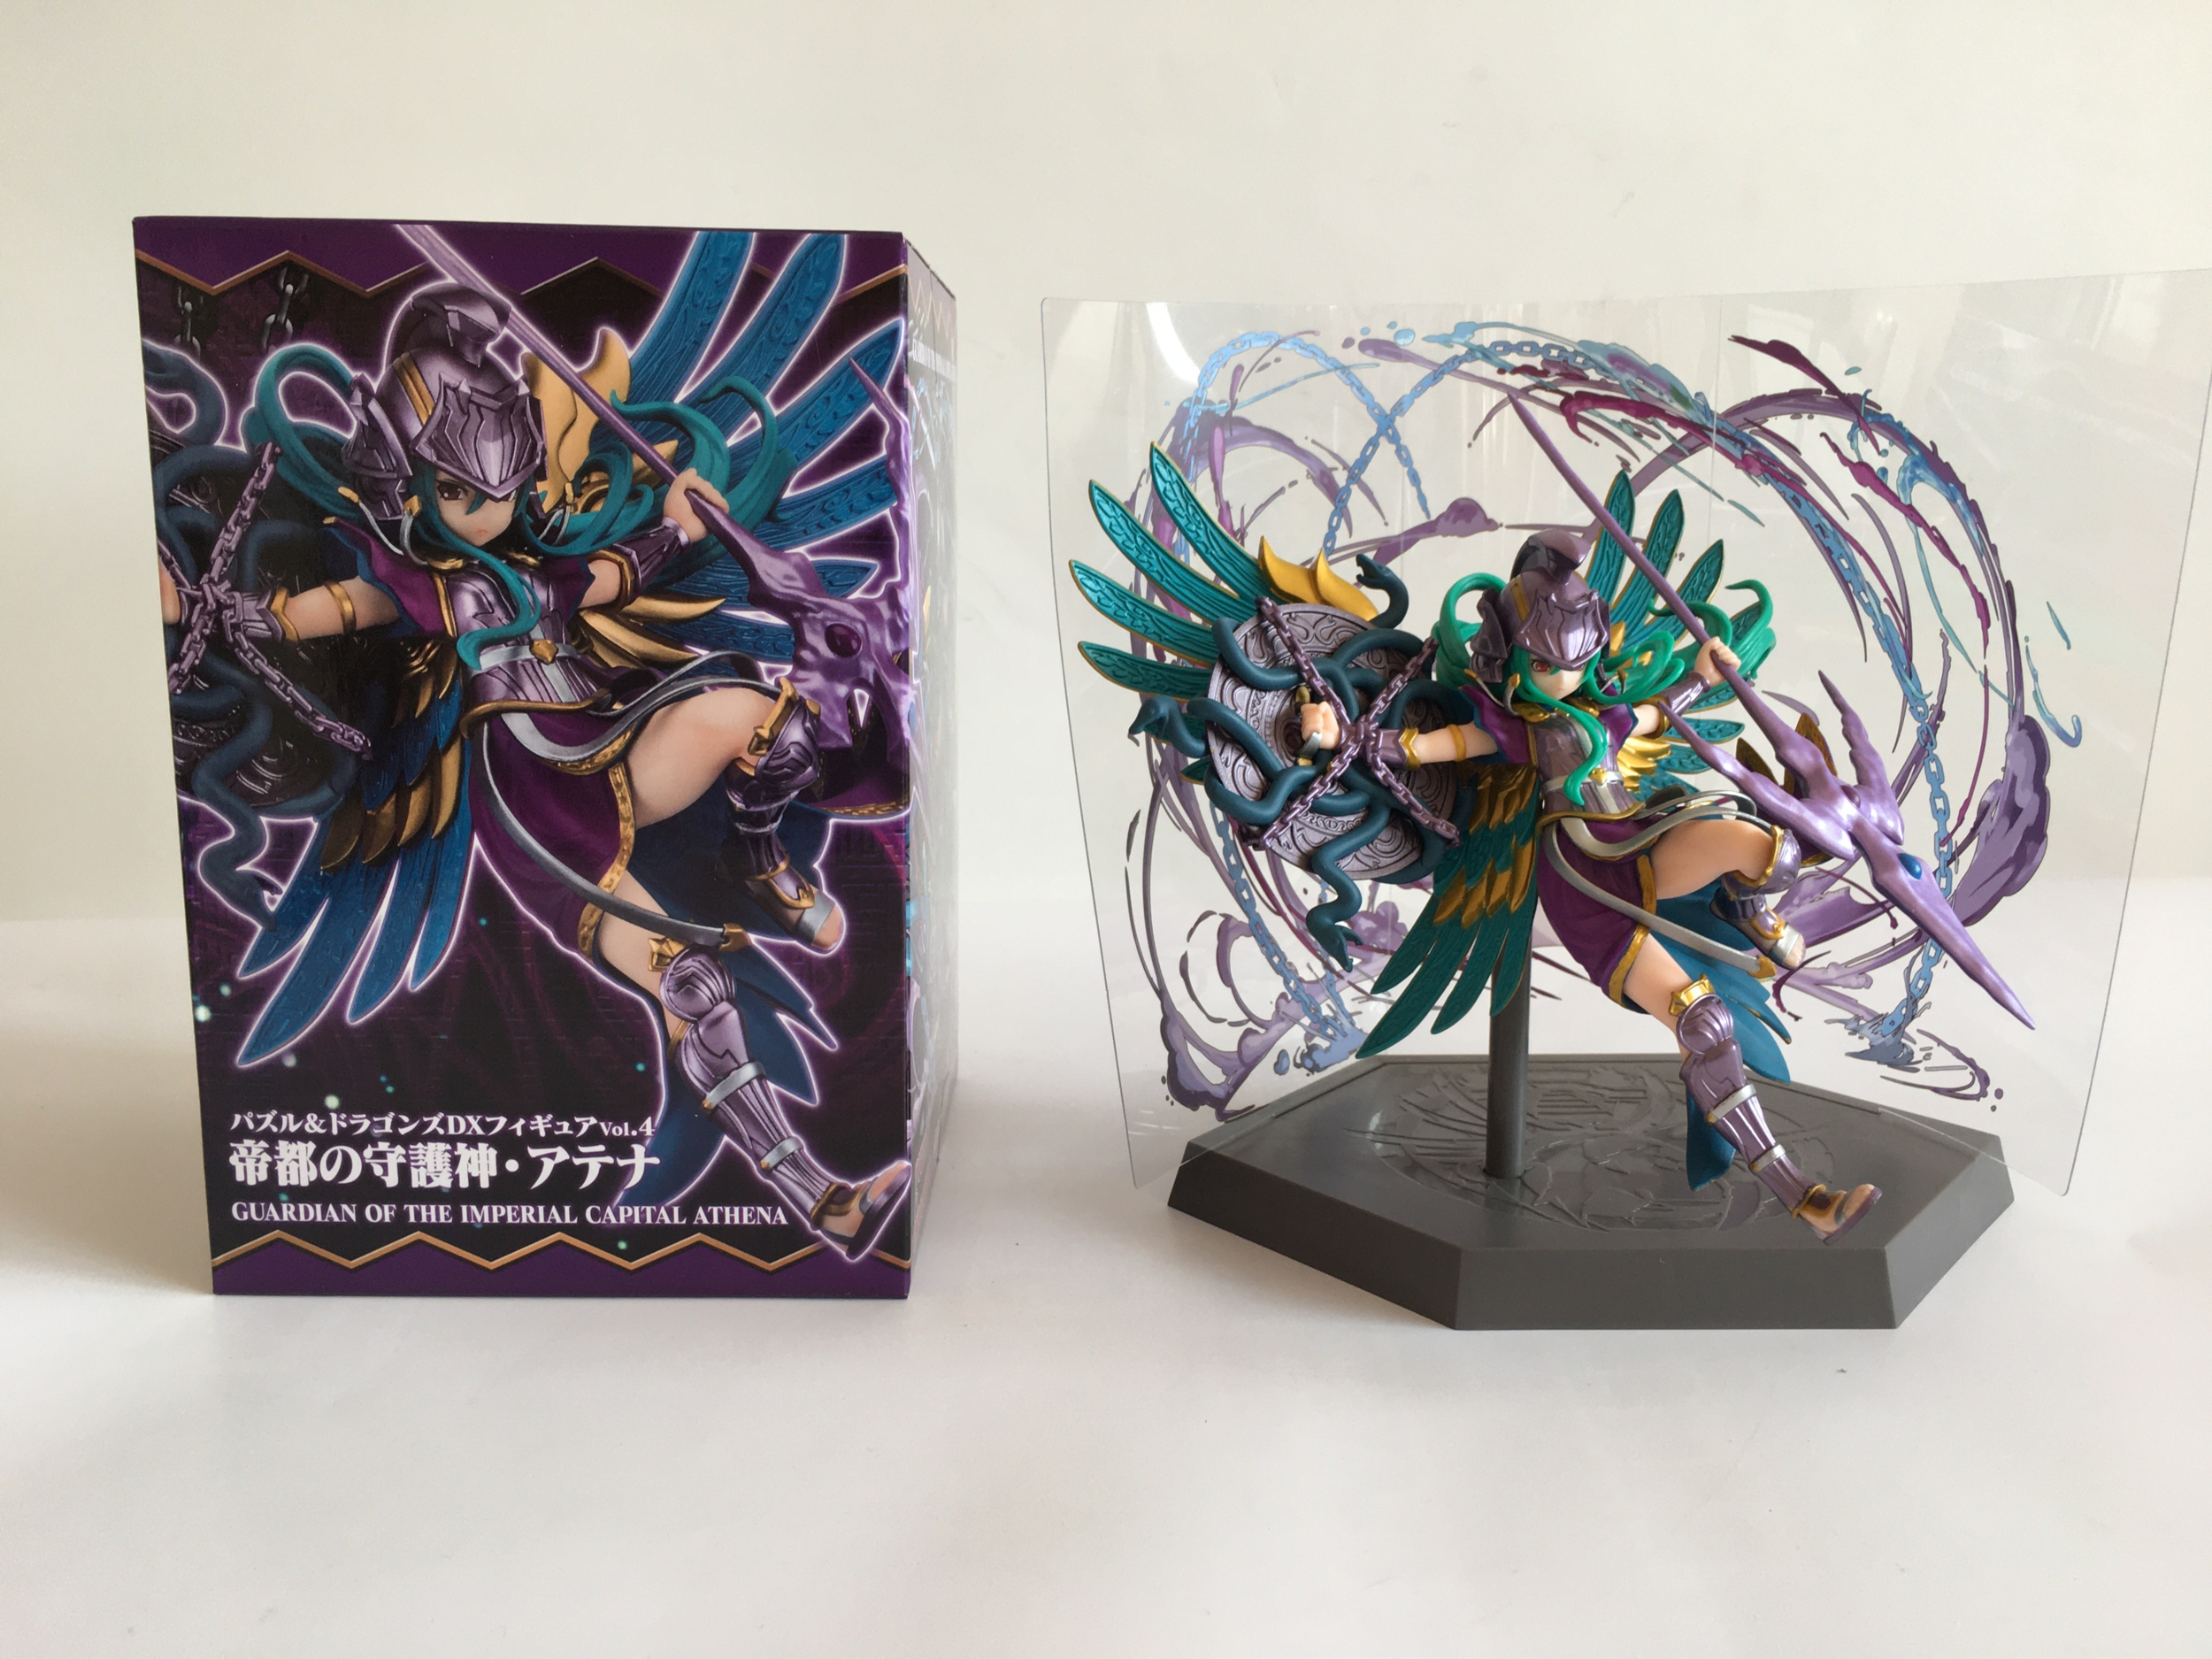 Puzzle & Dragons DX Figure Vol.4 - Guardian of the Imperial Capital Athena